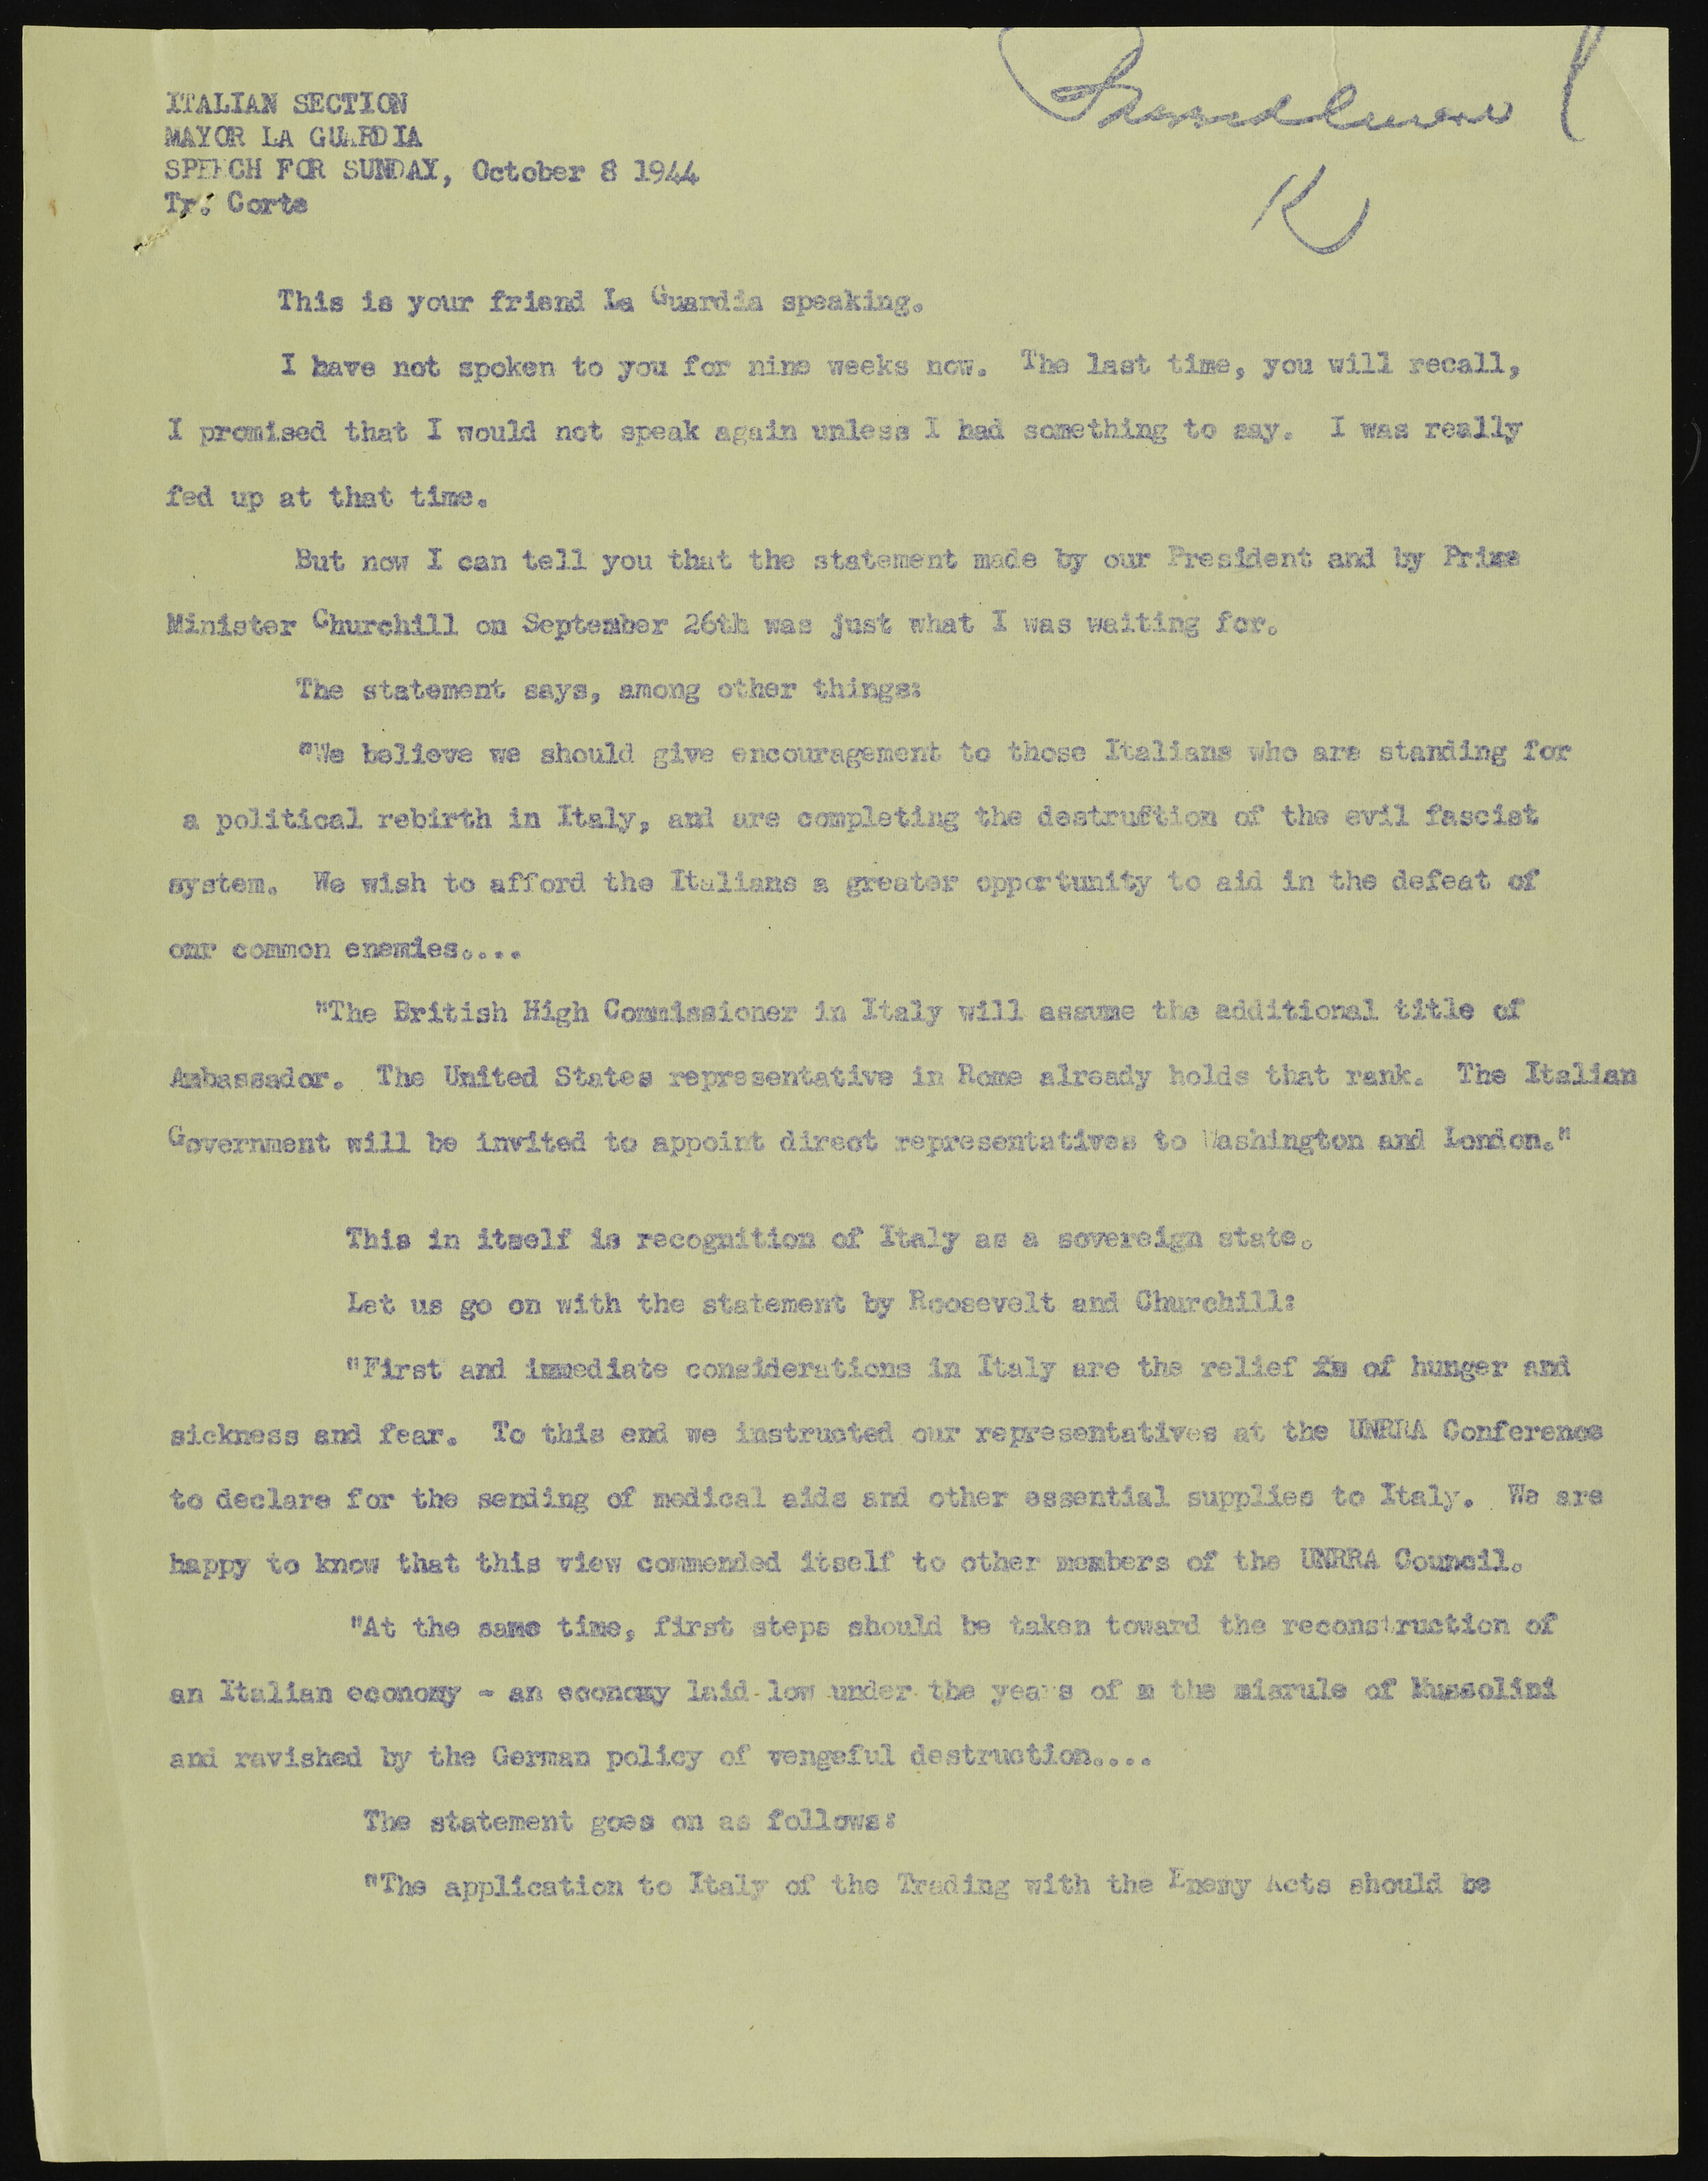 The English language draft of LaGuardia's October 8, 1944 speech. Mayor LaGuardia Collection, NYC Municipal Archives.